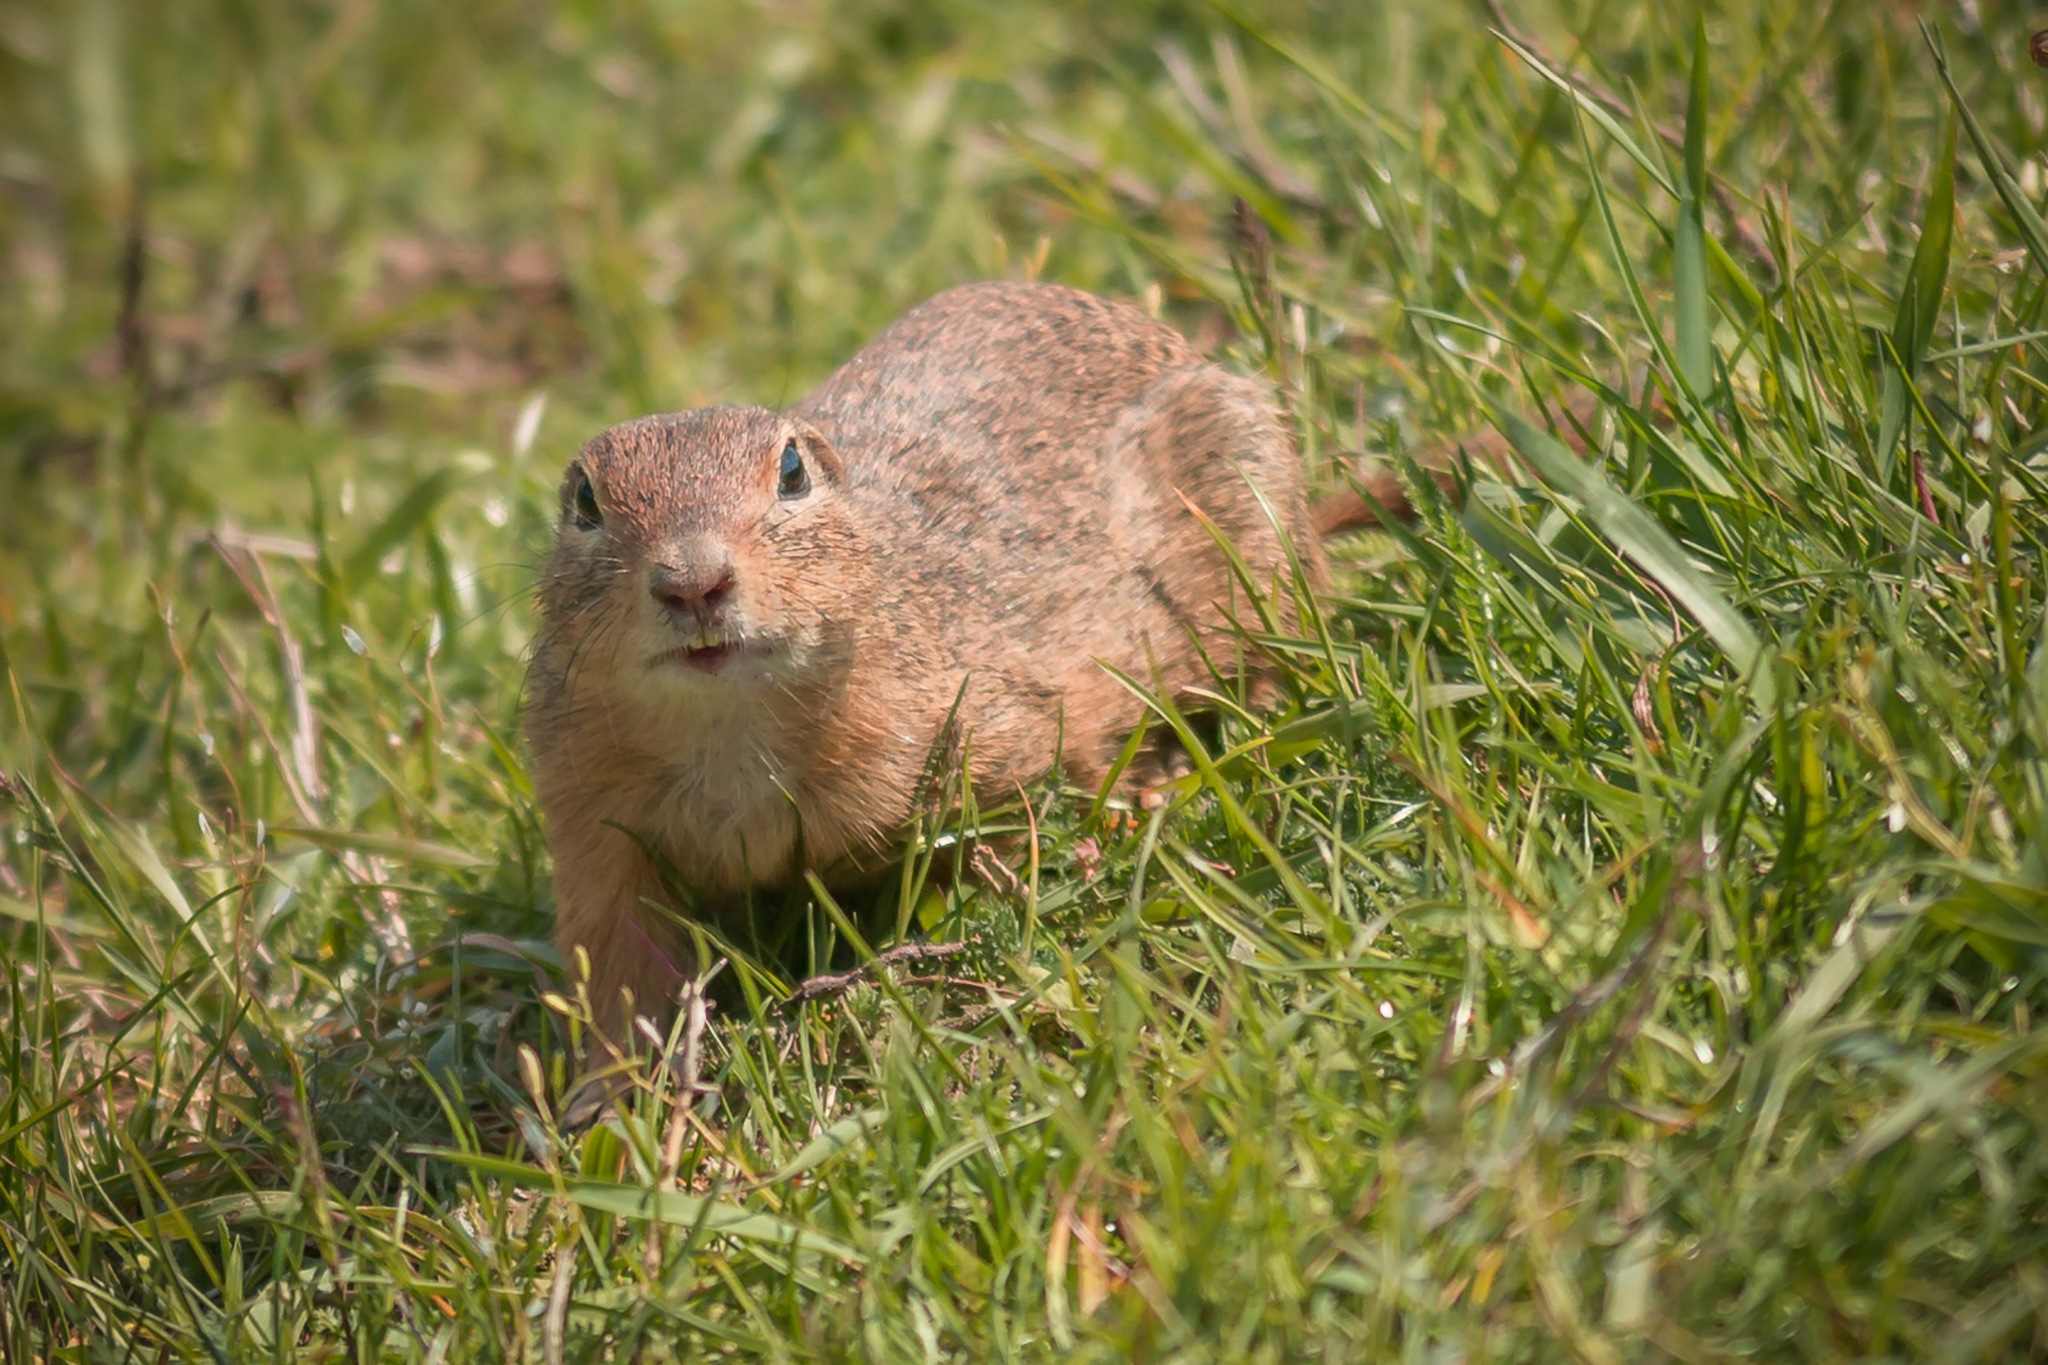 The European ground squirrel by VojcyPhoto